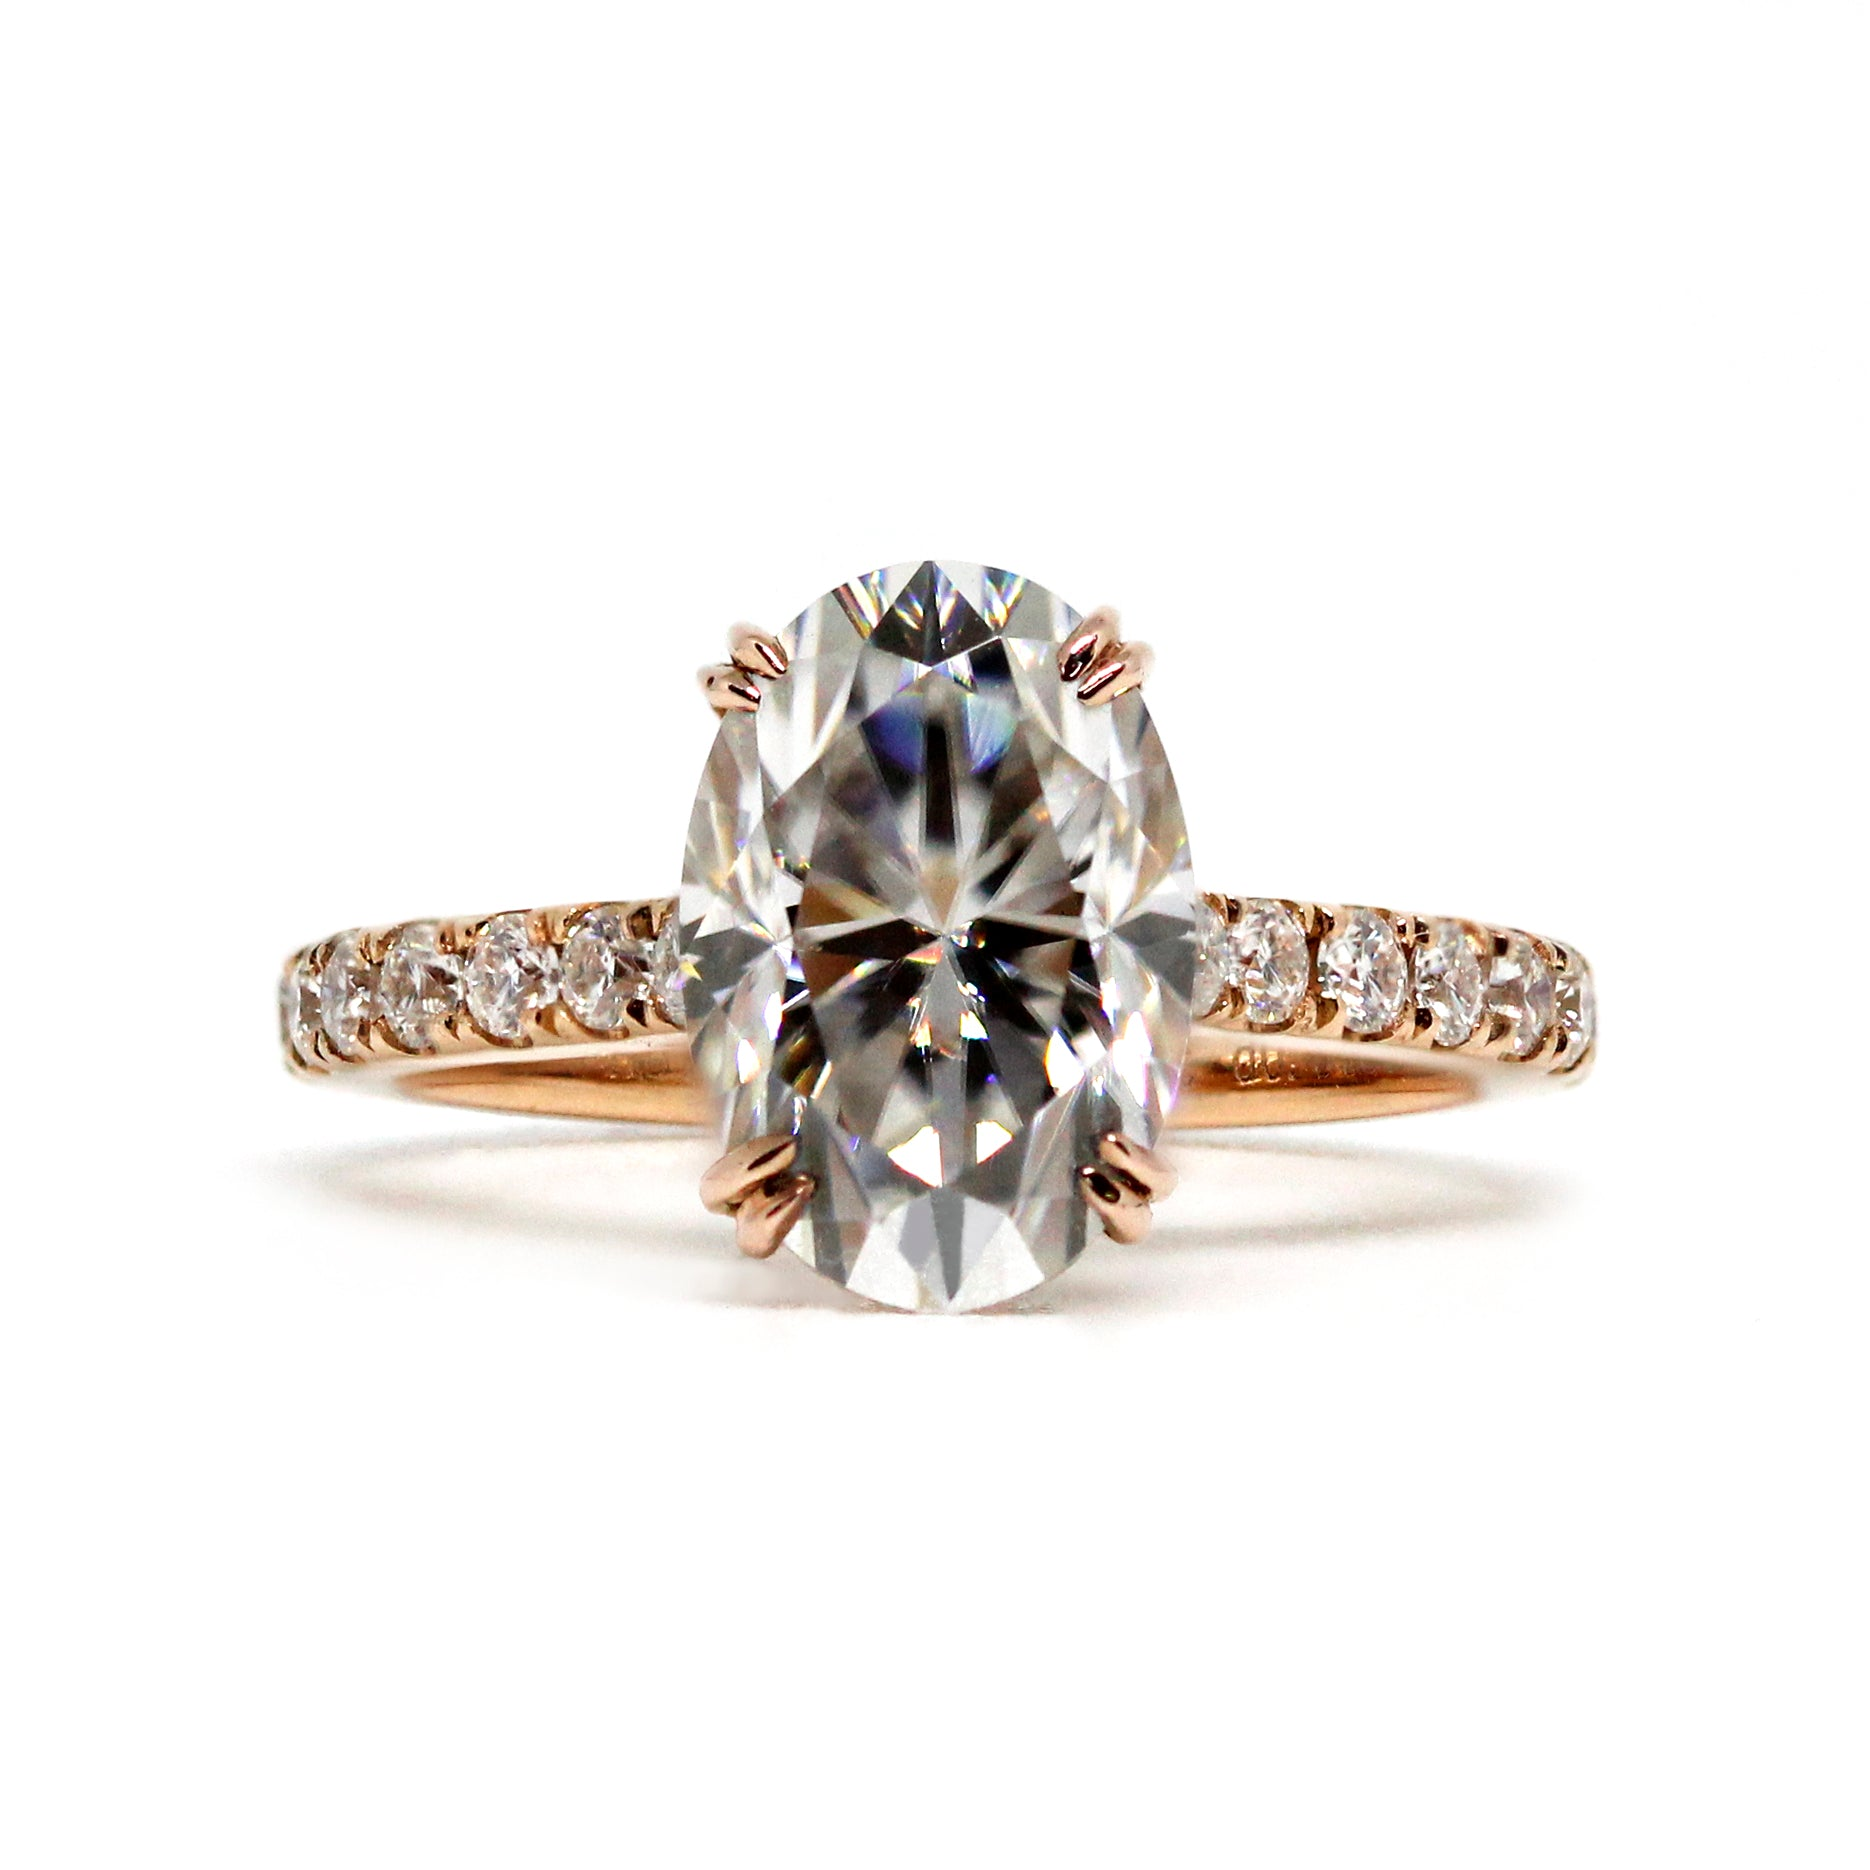 Oval Moissanite Ring with Hidden Halo in 18K Rose Gold Ring - Lecaine Gems Moissanite